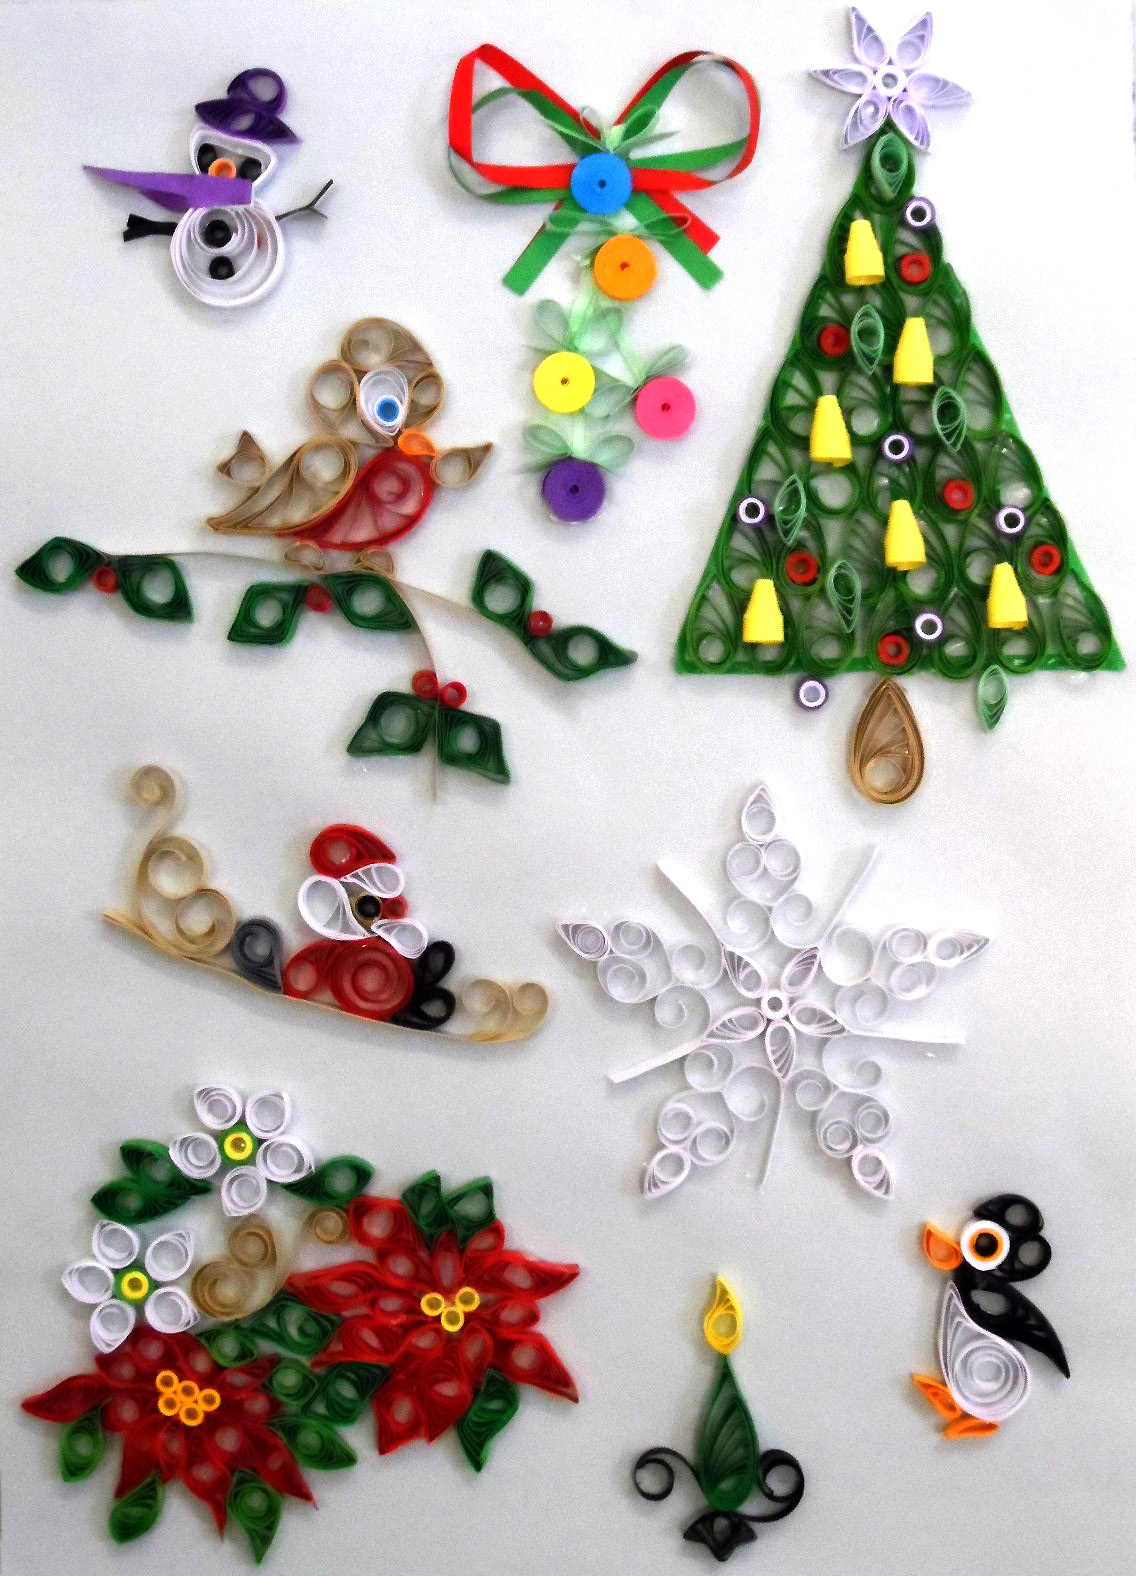 Quilling Kit - Designs at Christmas 1